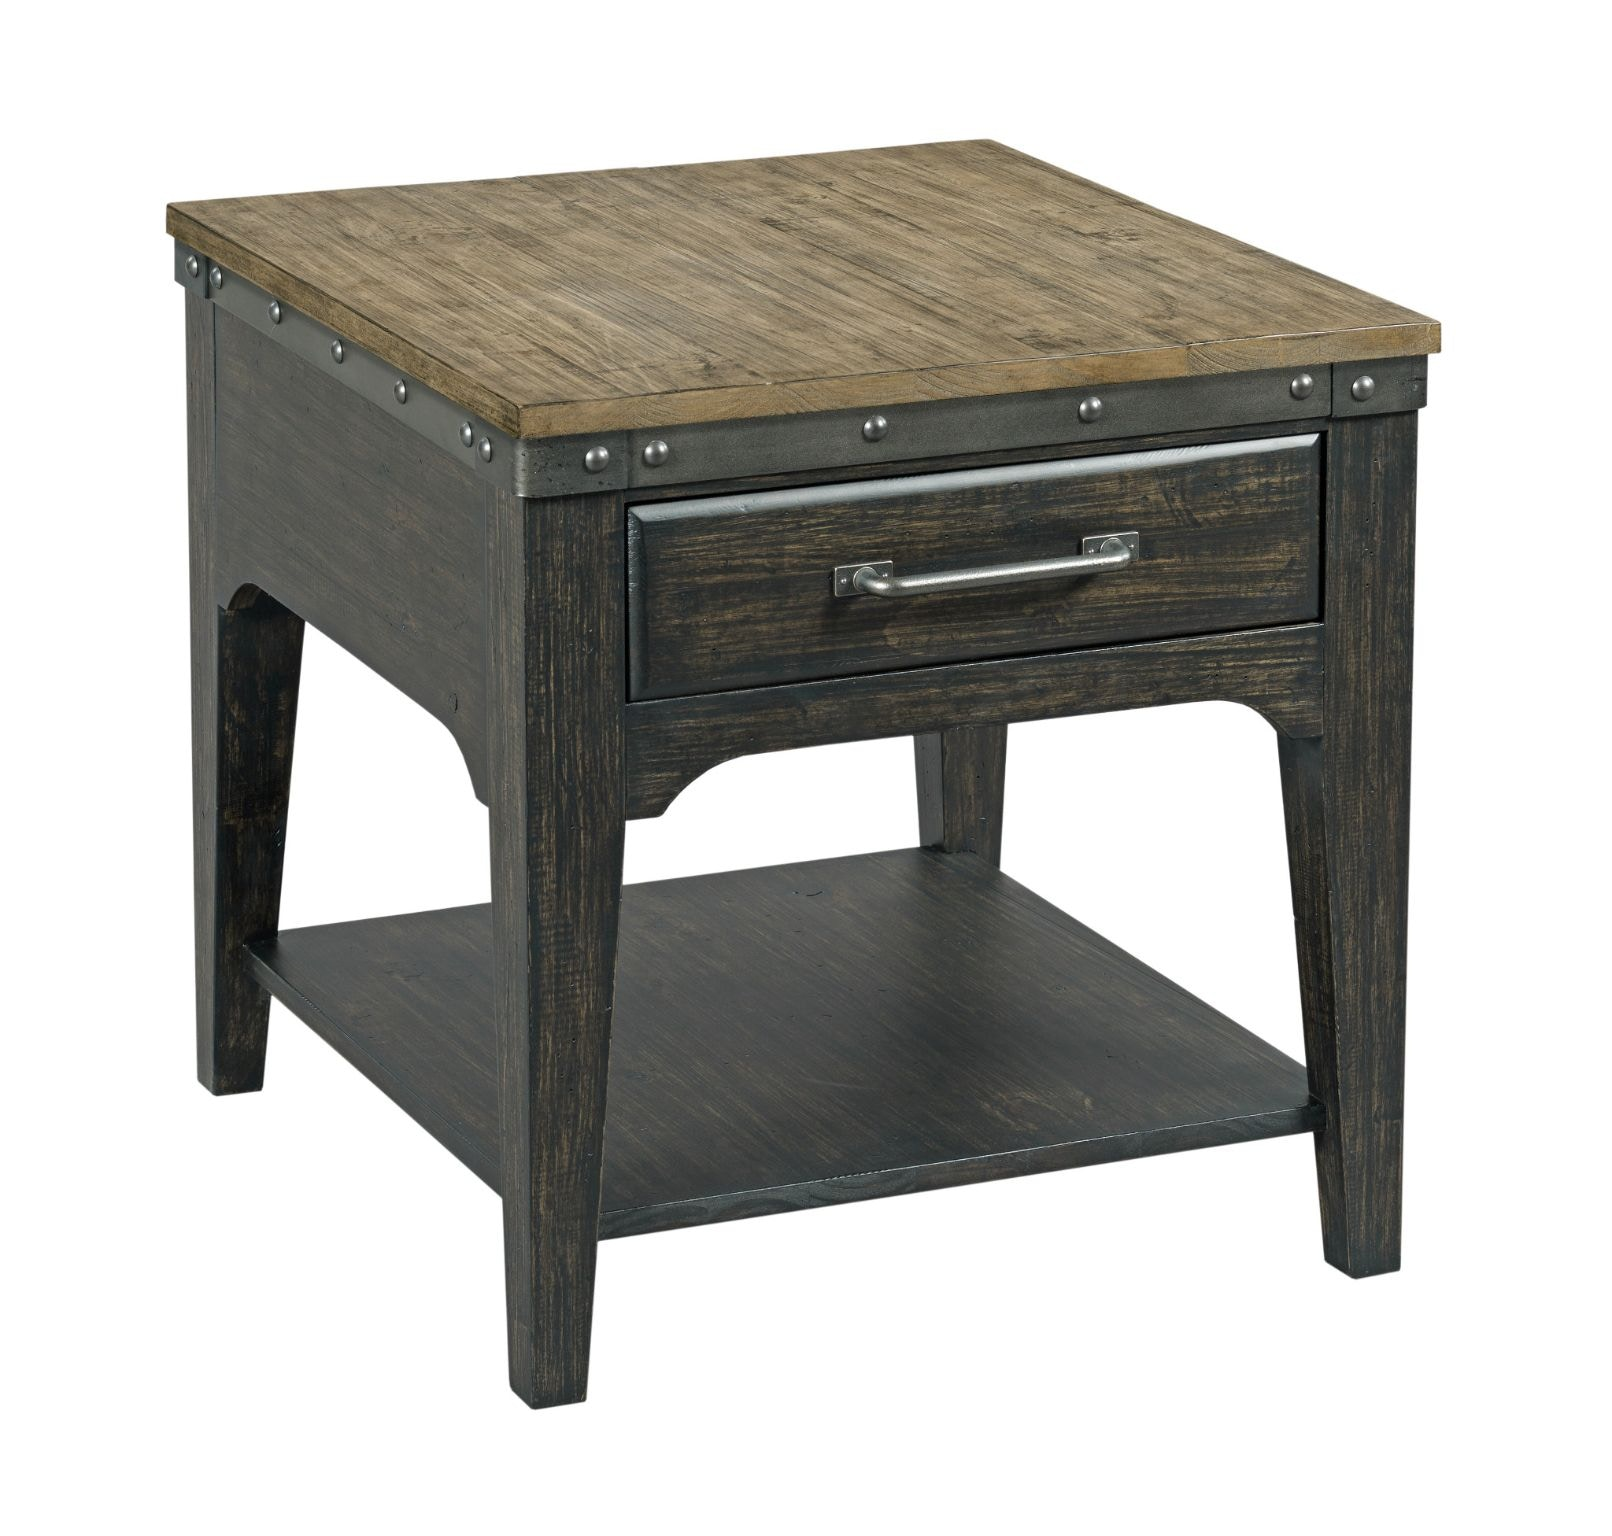 Kincaid Furniture Living Room Artisans Rectangular Drawer End Table  706 915C At New Ulm Furniture Co.